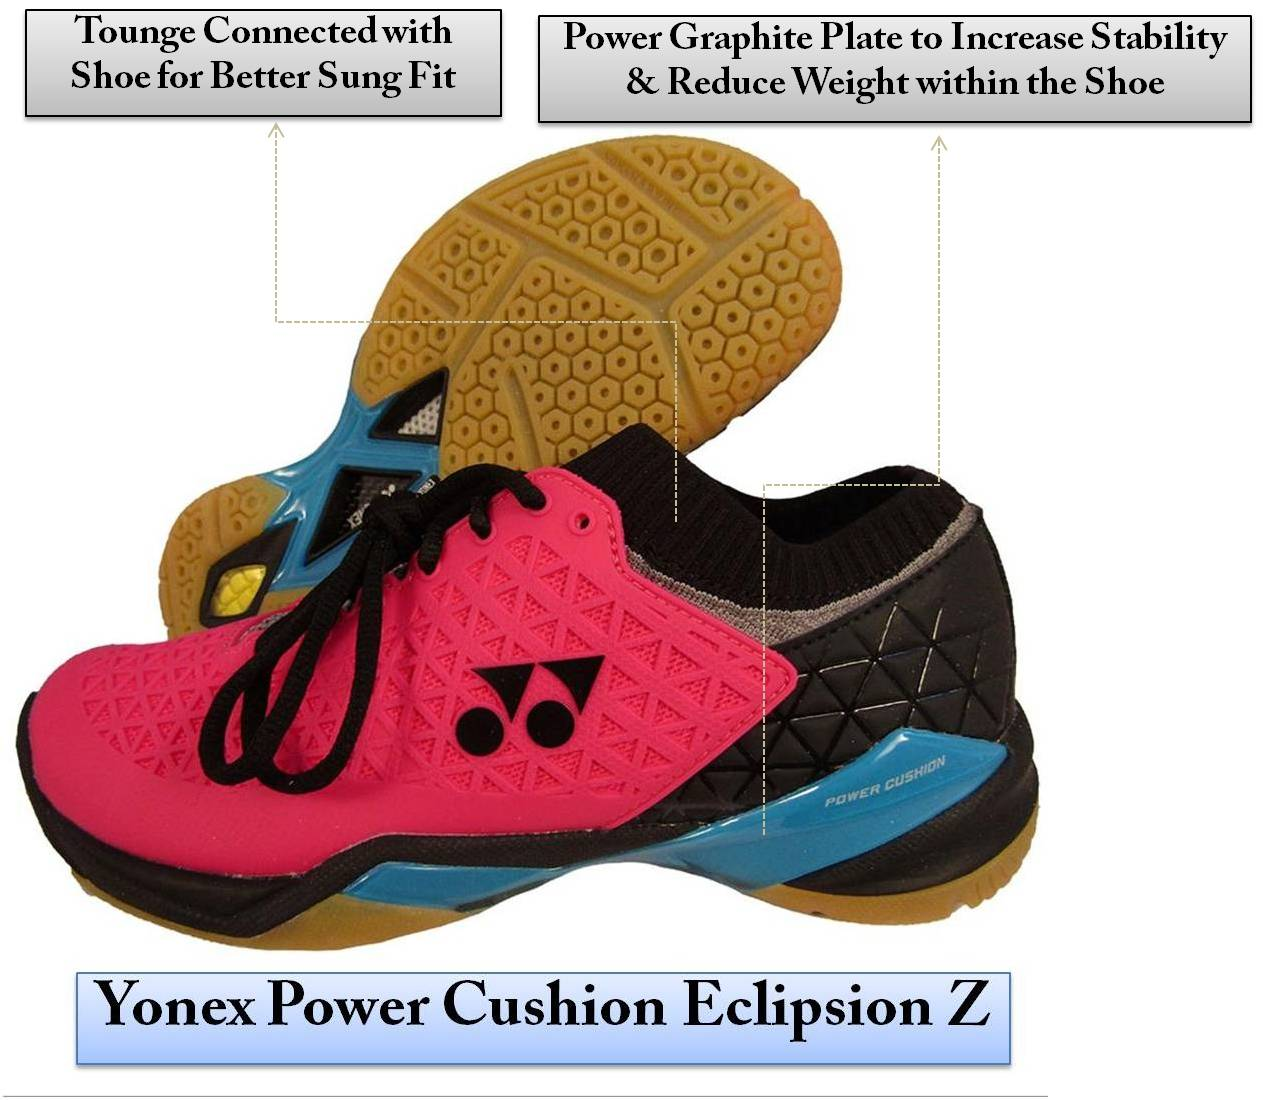 Yonex_Power_Cushion_Eclipsion_Z_Imaga